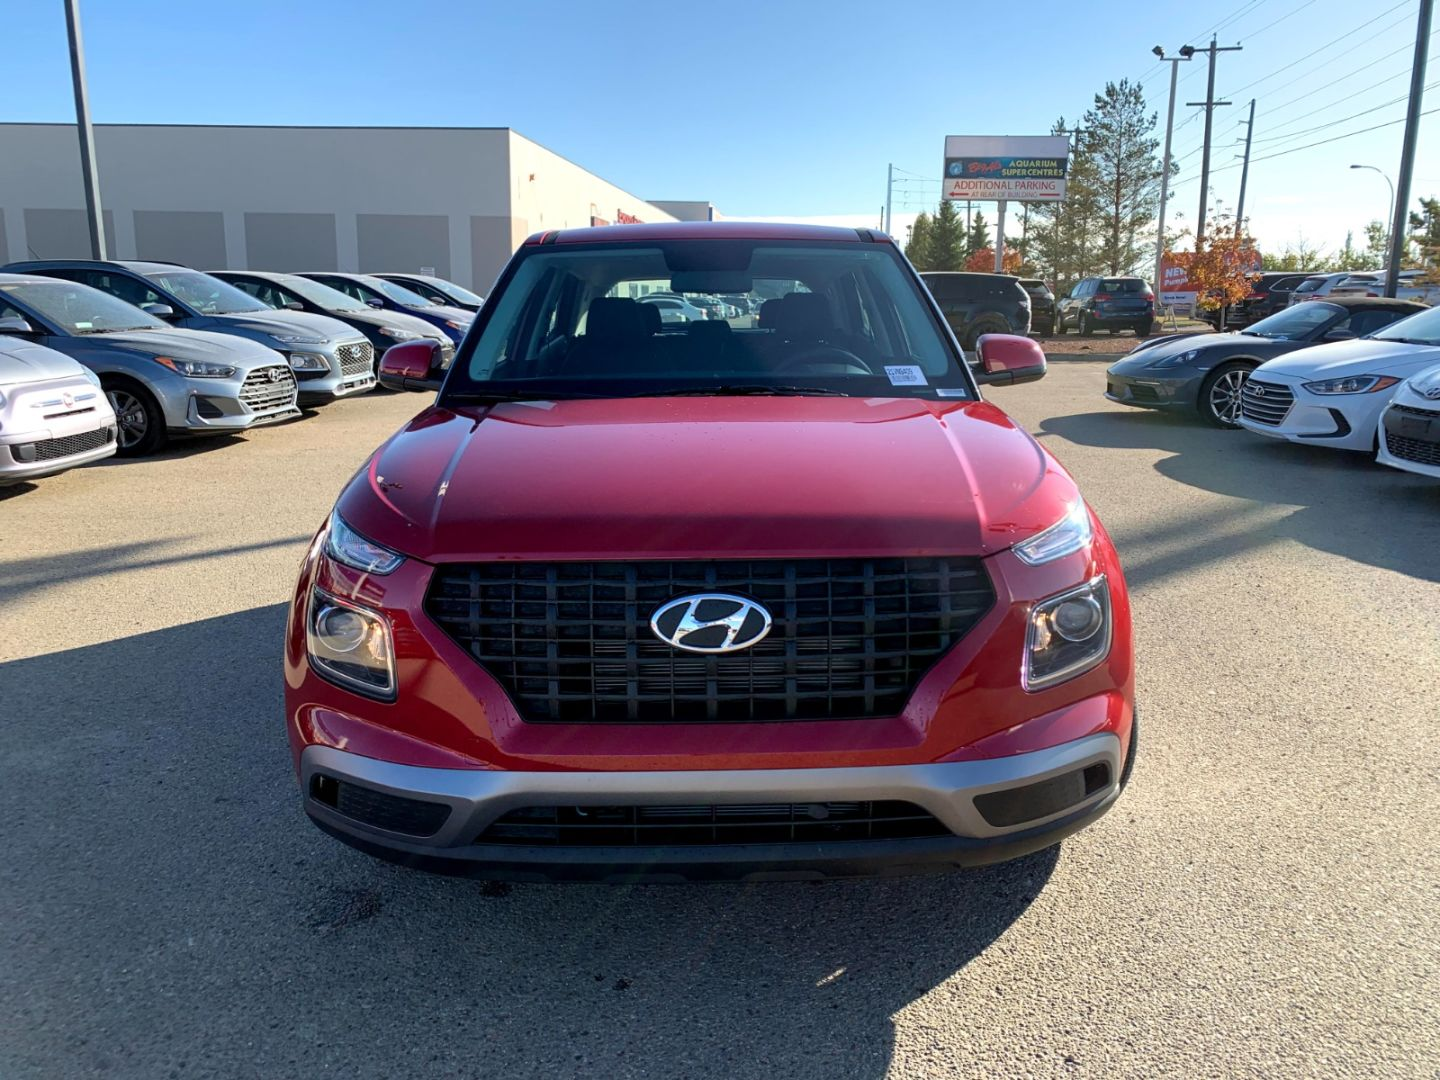 2021 Hyundai Venue Essential for sale in Edmonton, Alberta